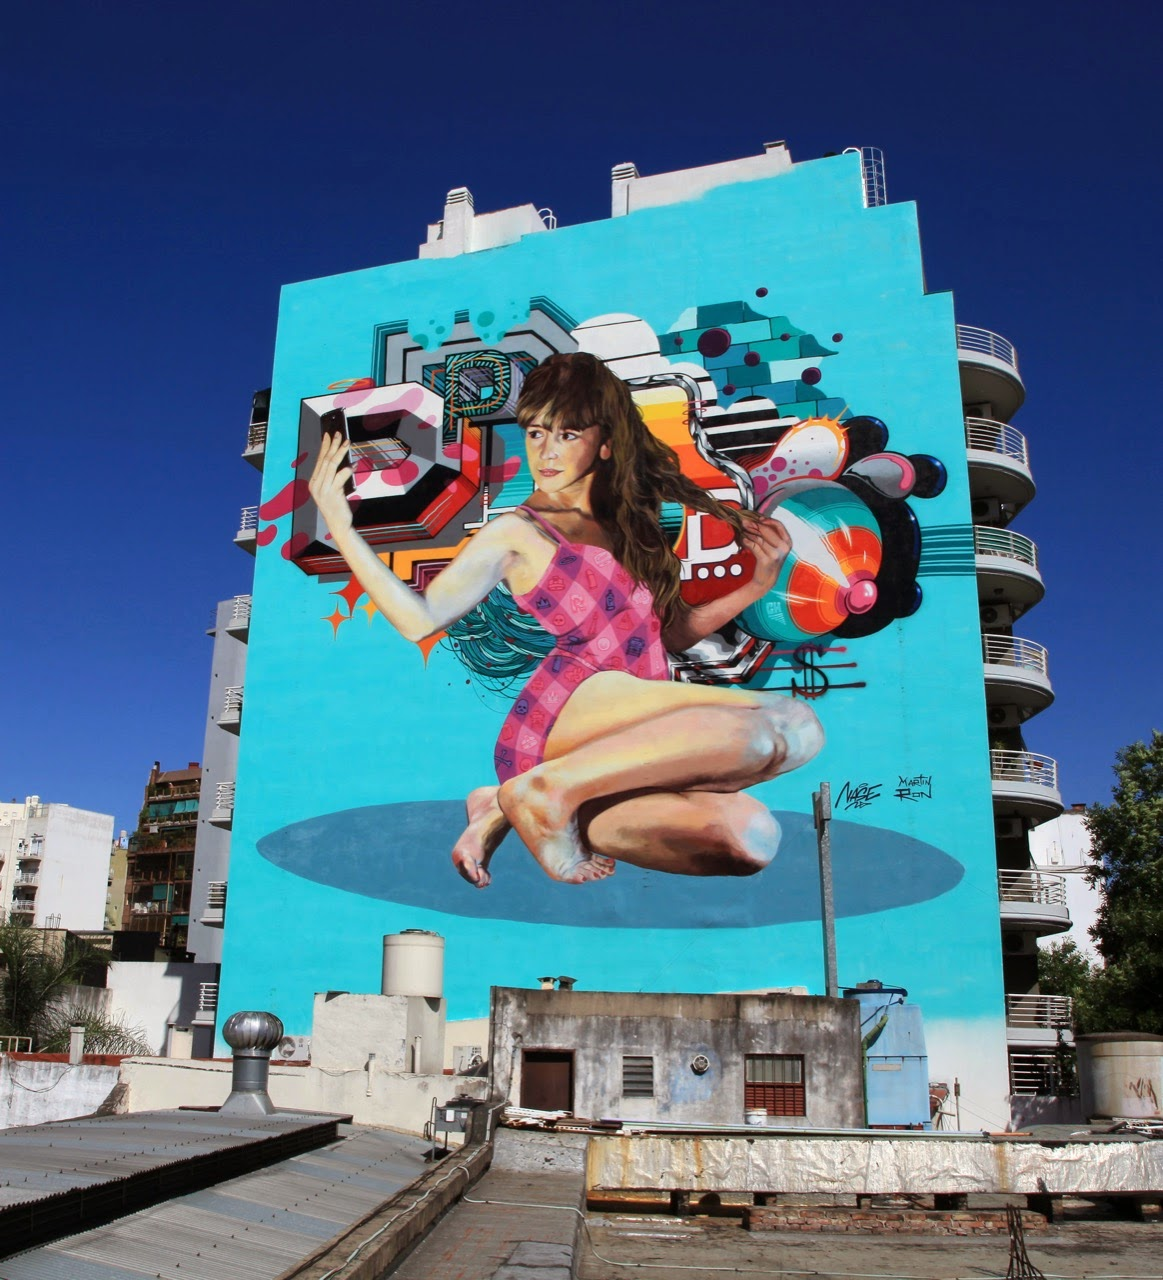 While we last heard from him in Miami a few weeks ago, Martin Ron is now back in his hometown of Buenos Aires where he just finished working on this new piece with his friend Nase Pop.